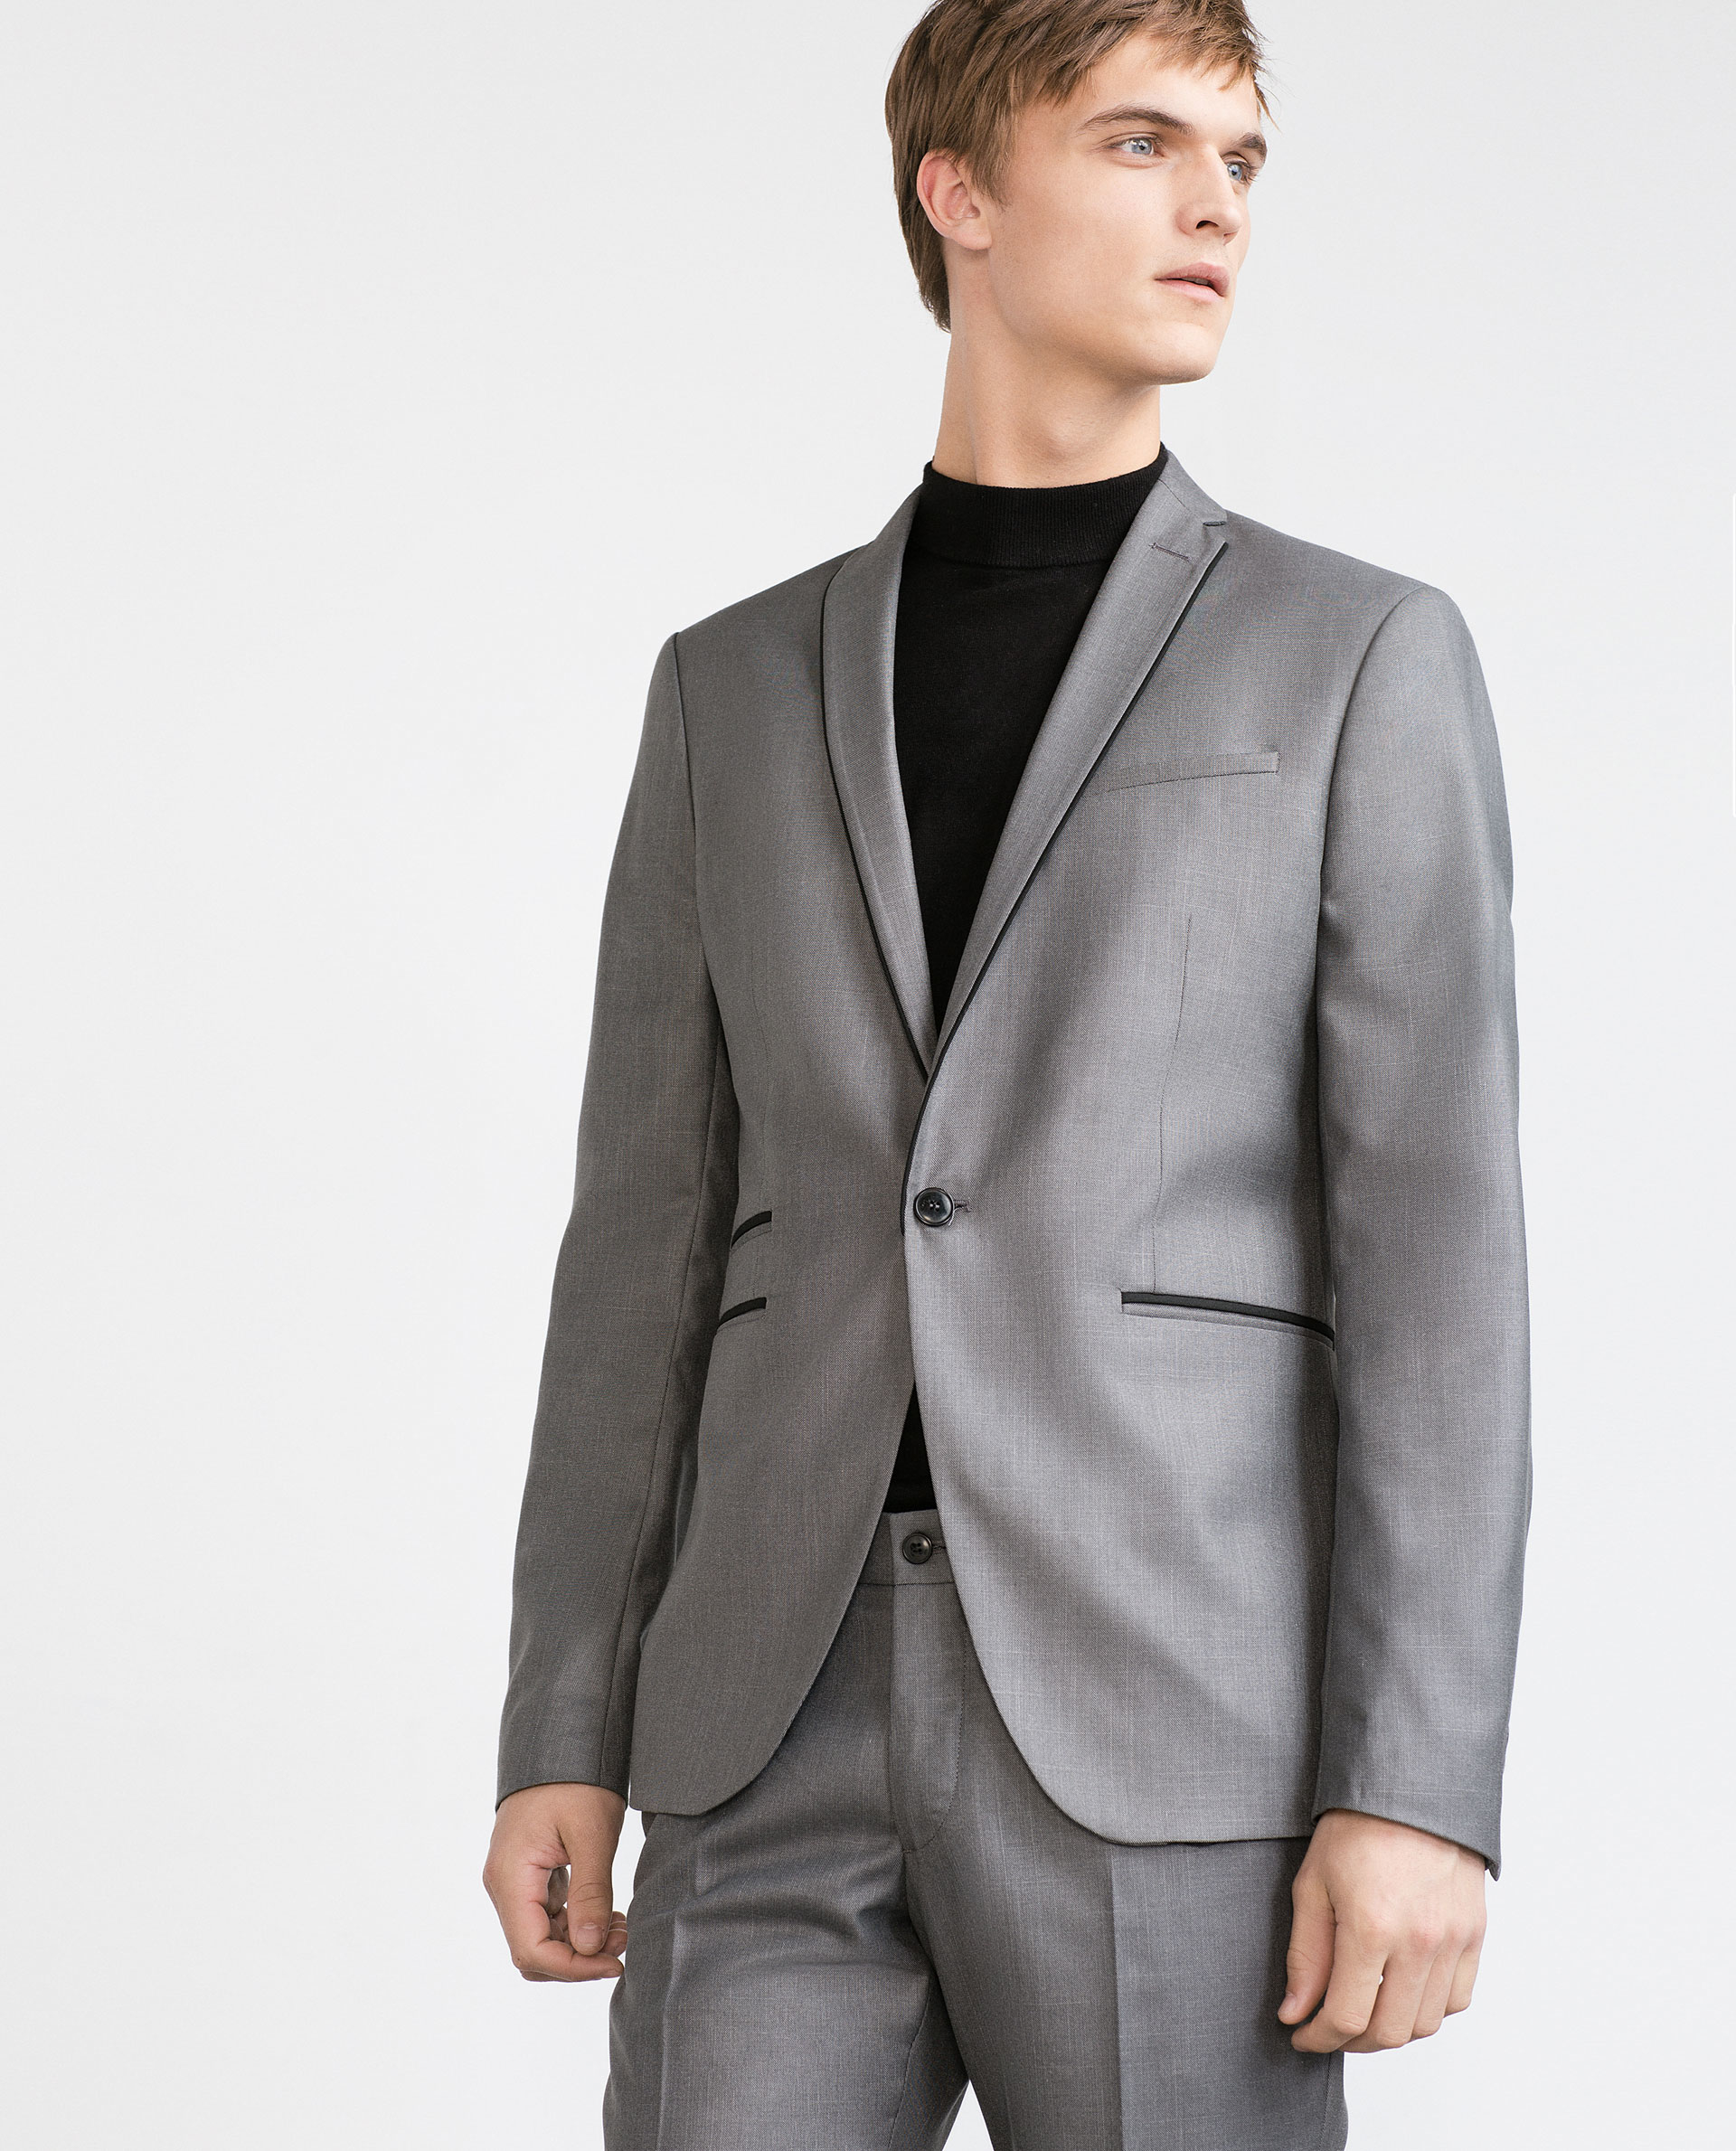 Grey Suit With Black Piping Dress Yy